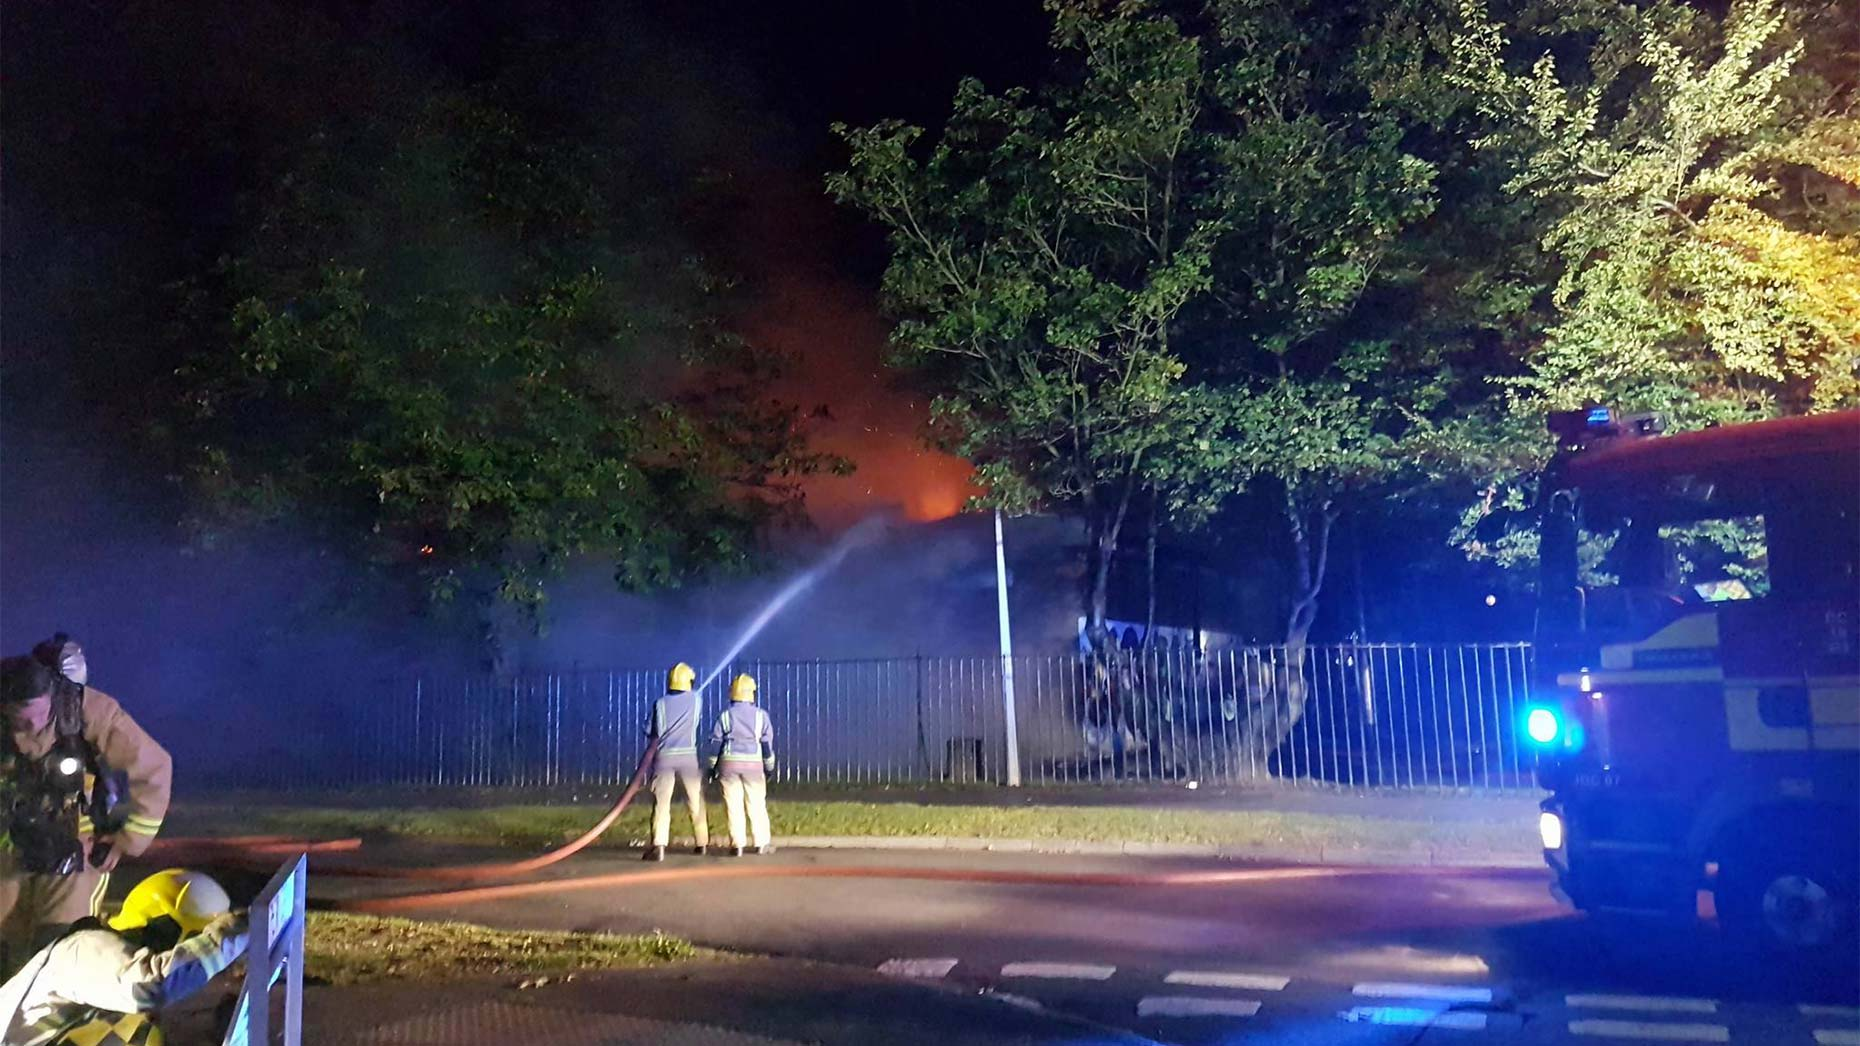 The fire started at around 10pm on Friday. Photo: Ian Betton